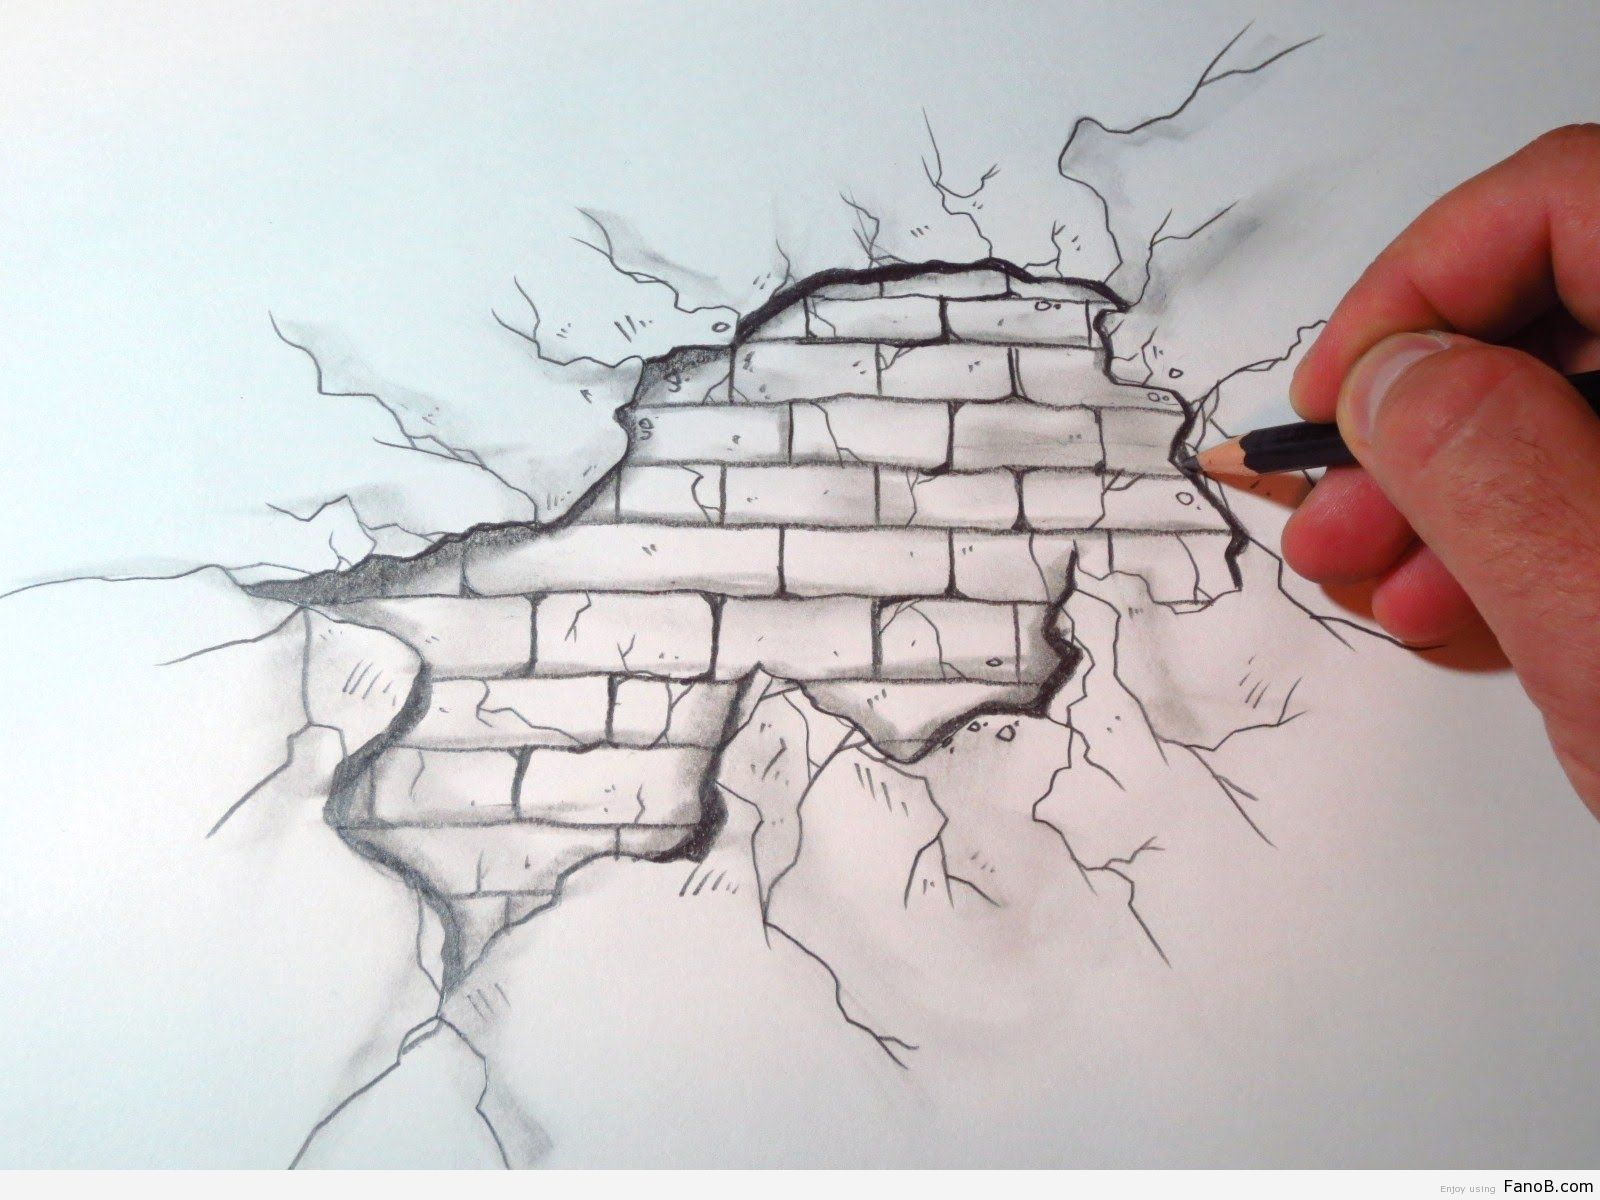 Easy wall drawing ideas sketch ideas for beginners pencil drawings for beginners pencil sketches